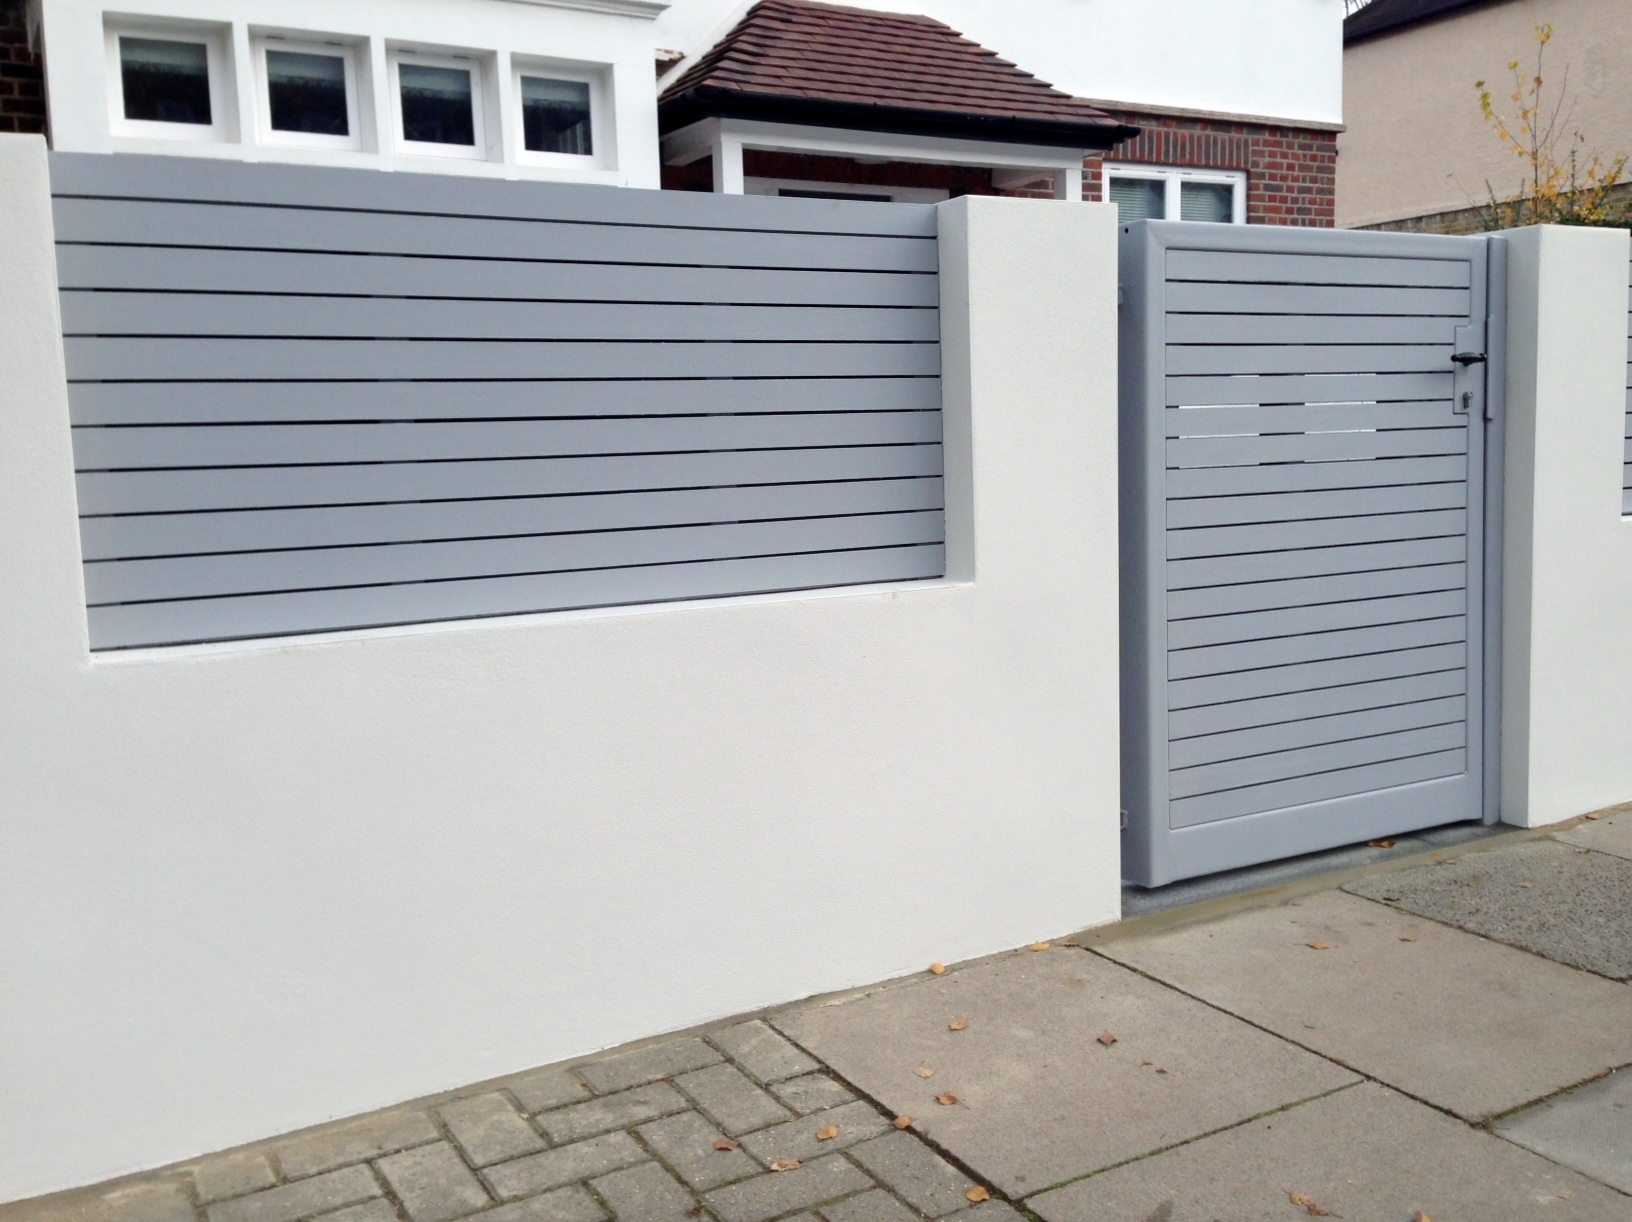 Boundary wall gate images joy studio design gallery for Boundary wall